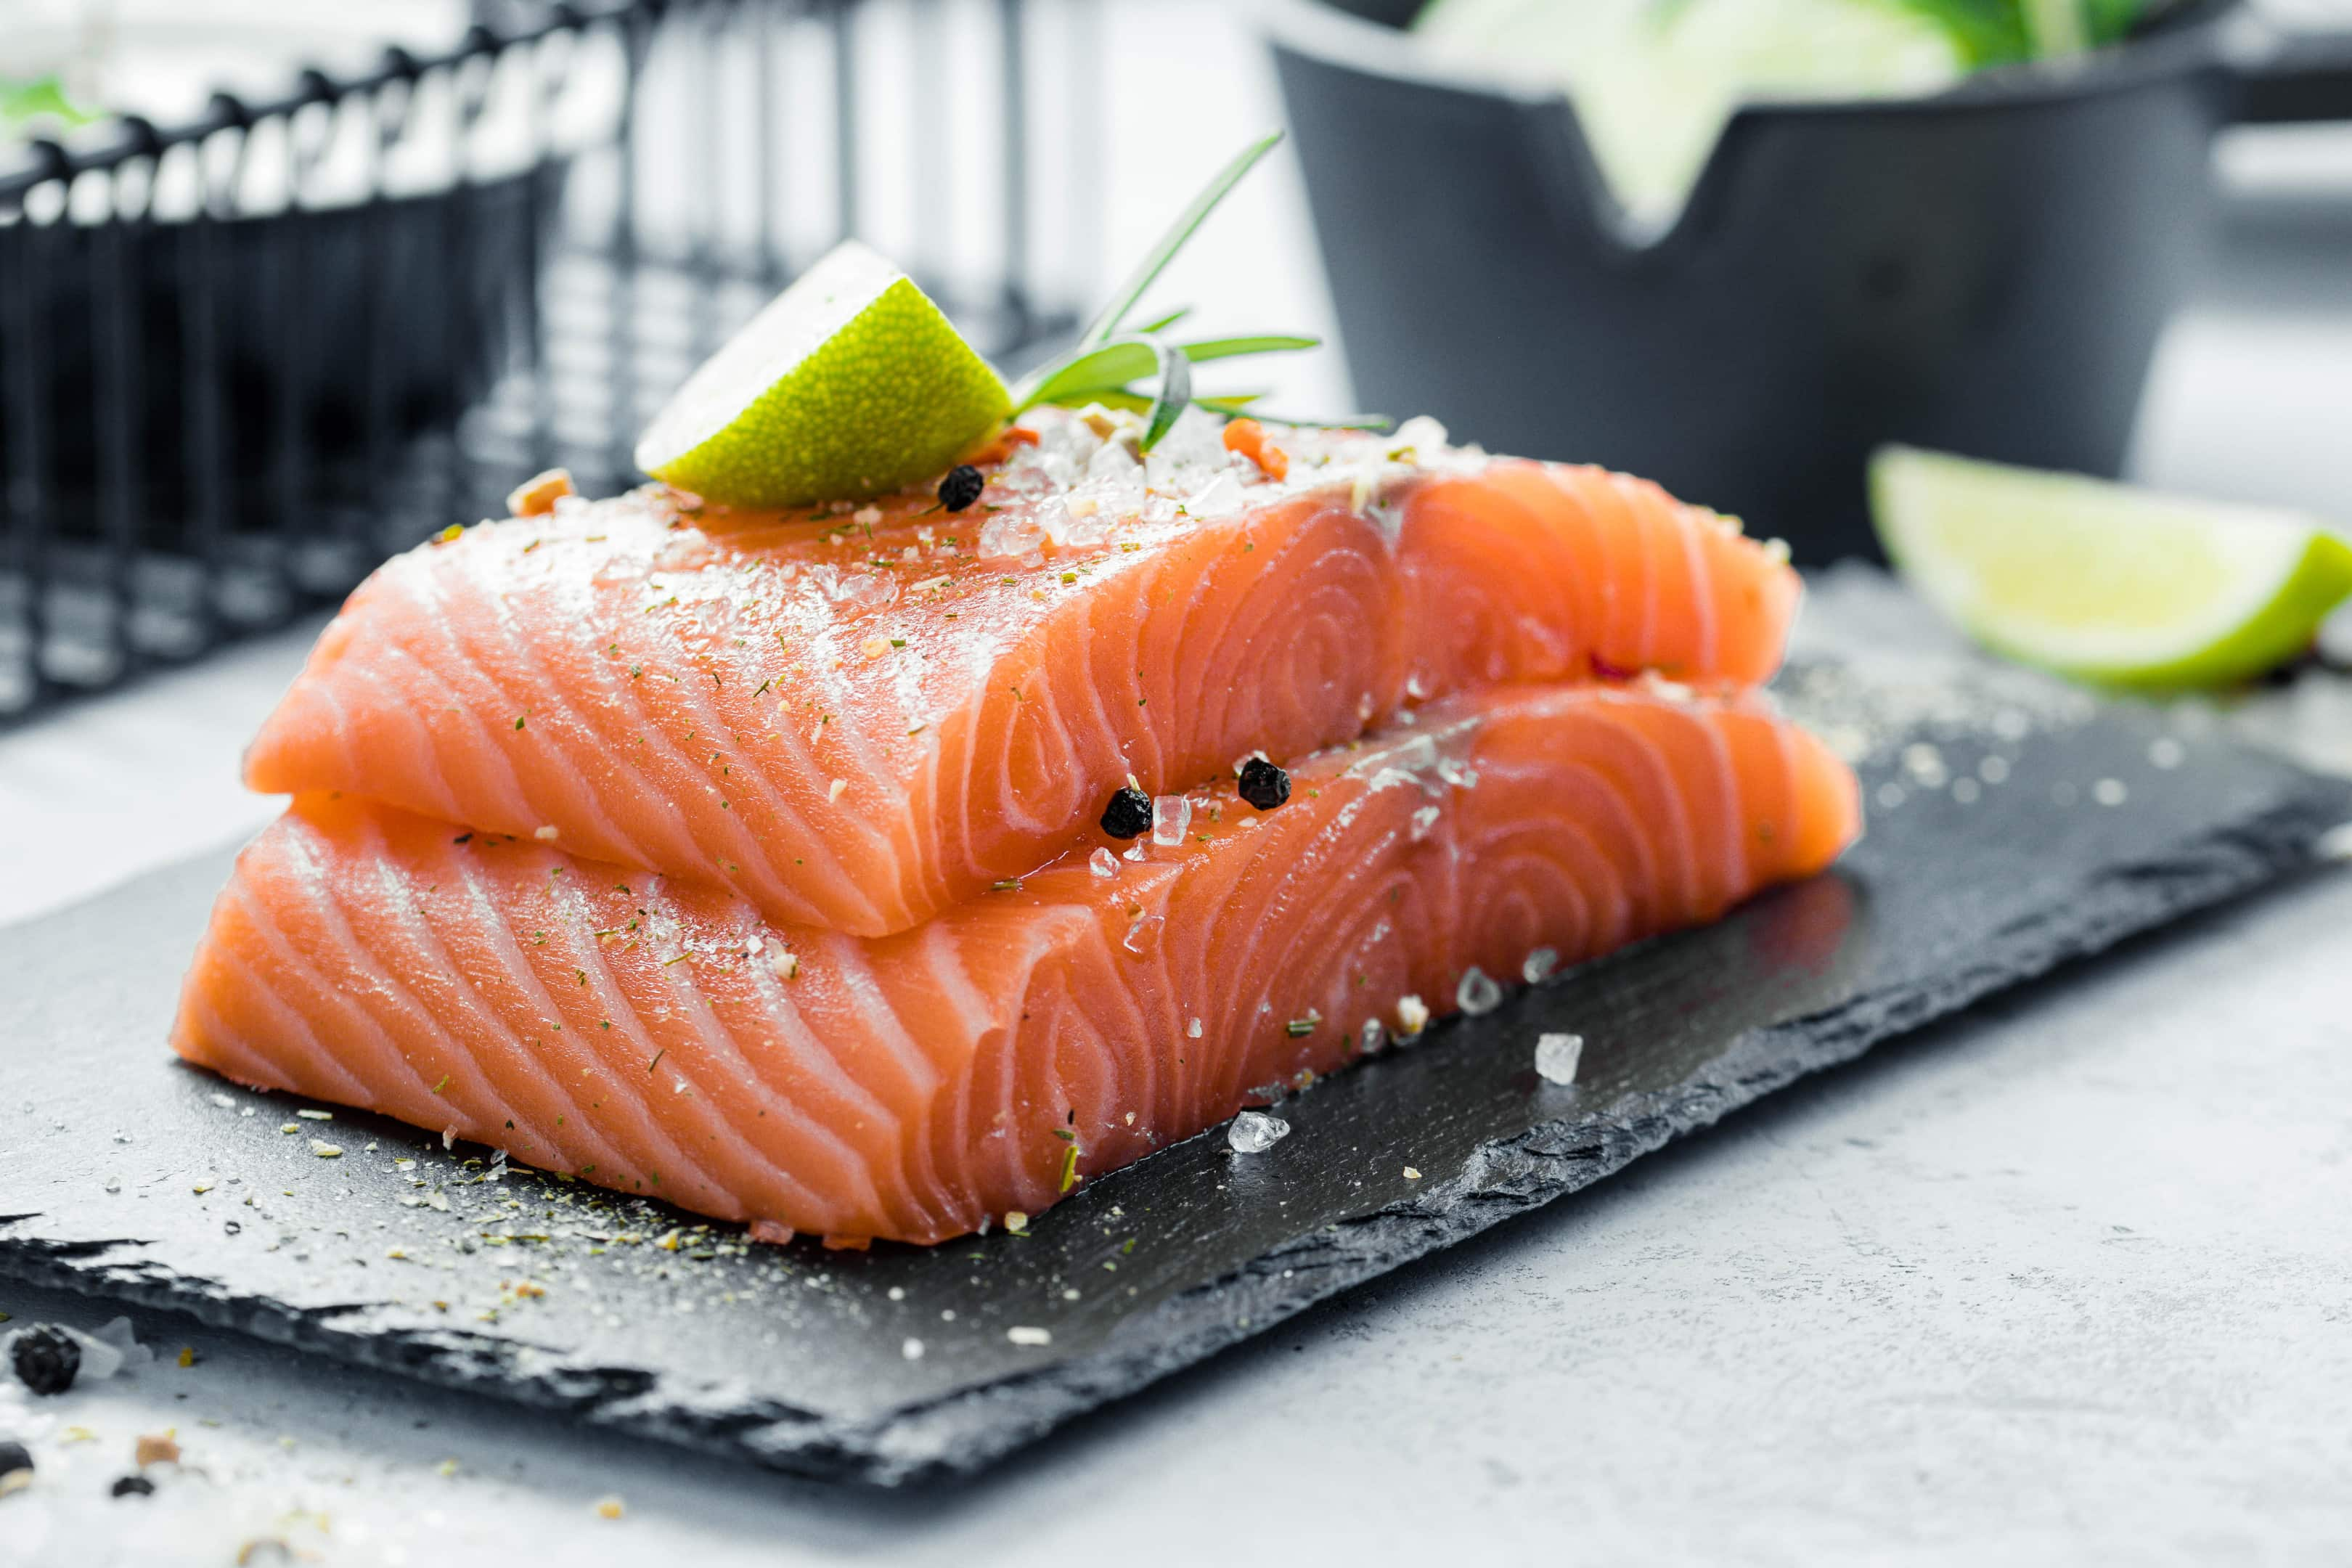 Two pieces of raw salmon fillet